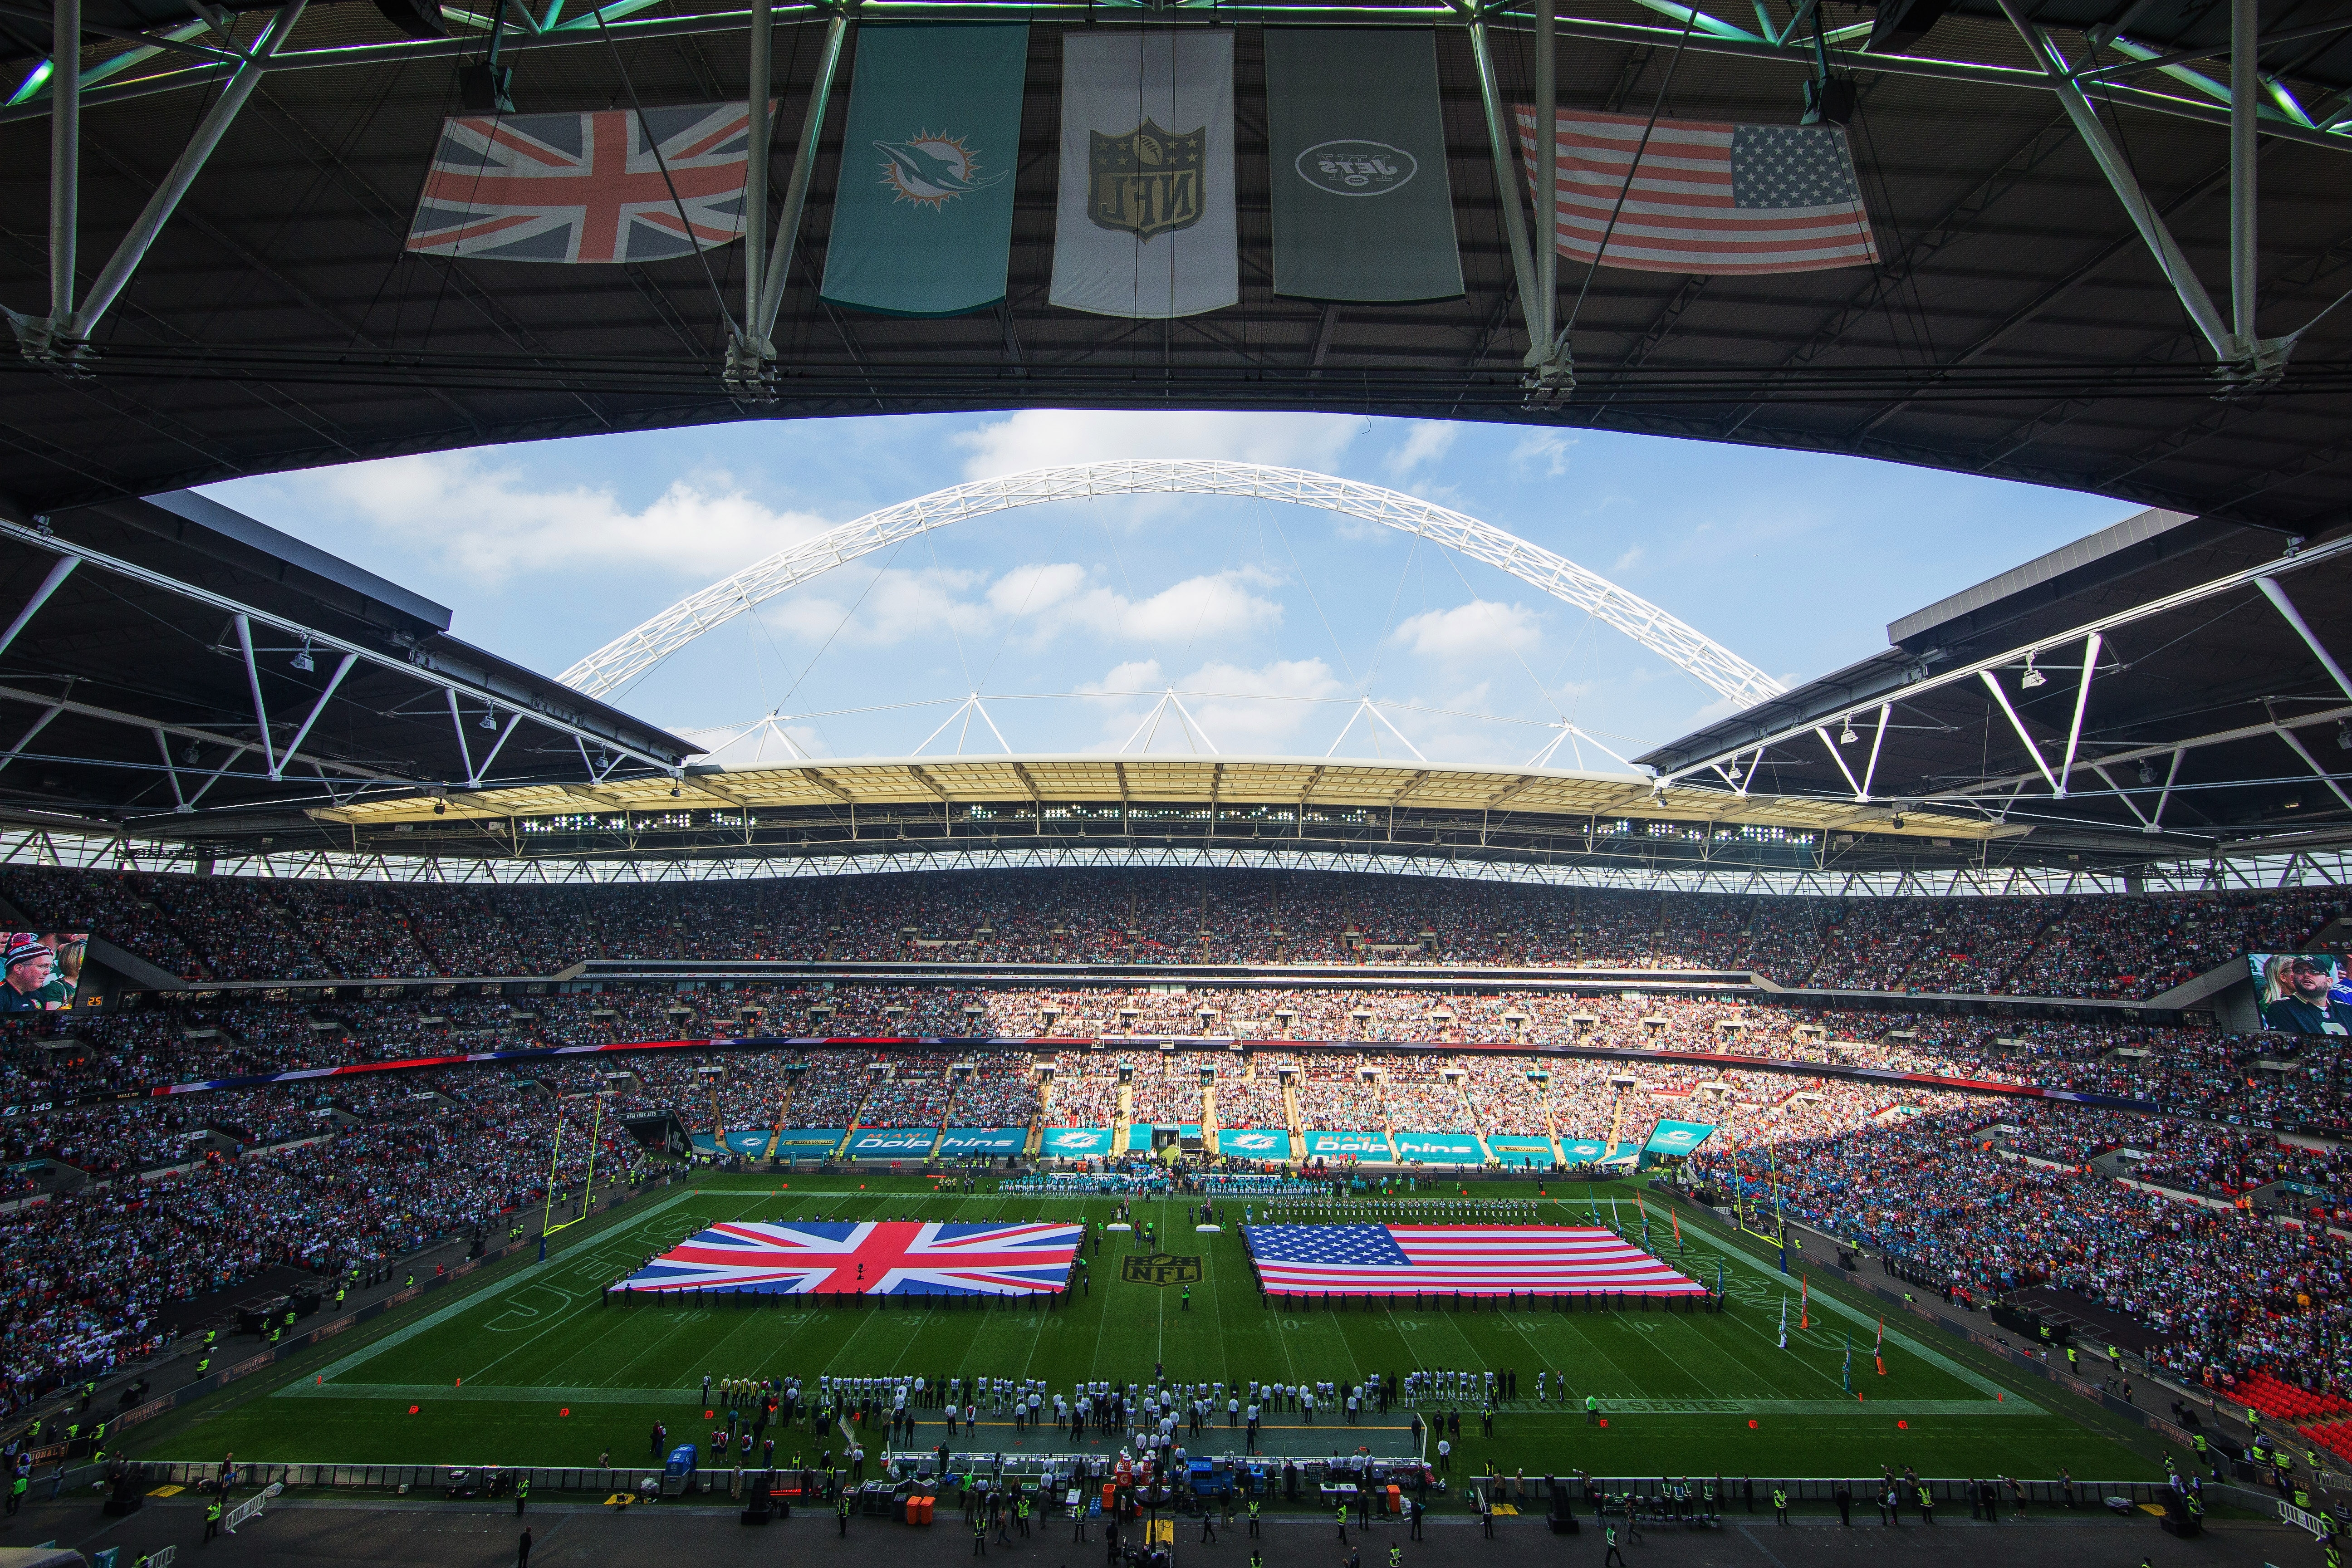 This file photo shows Wembley Stadium in London, where the Bills will play the Jaguars on Sunday.  (Getty Images)